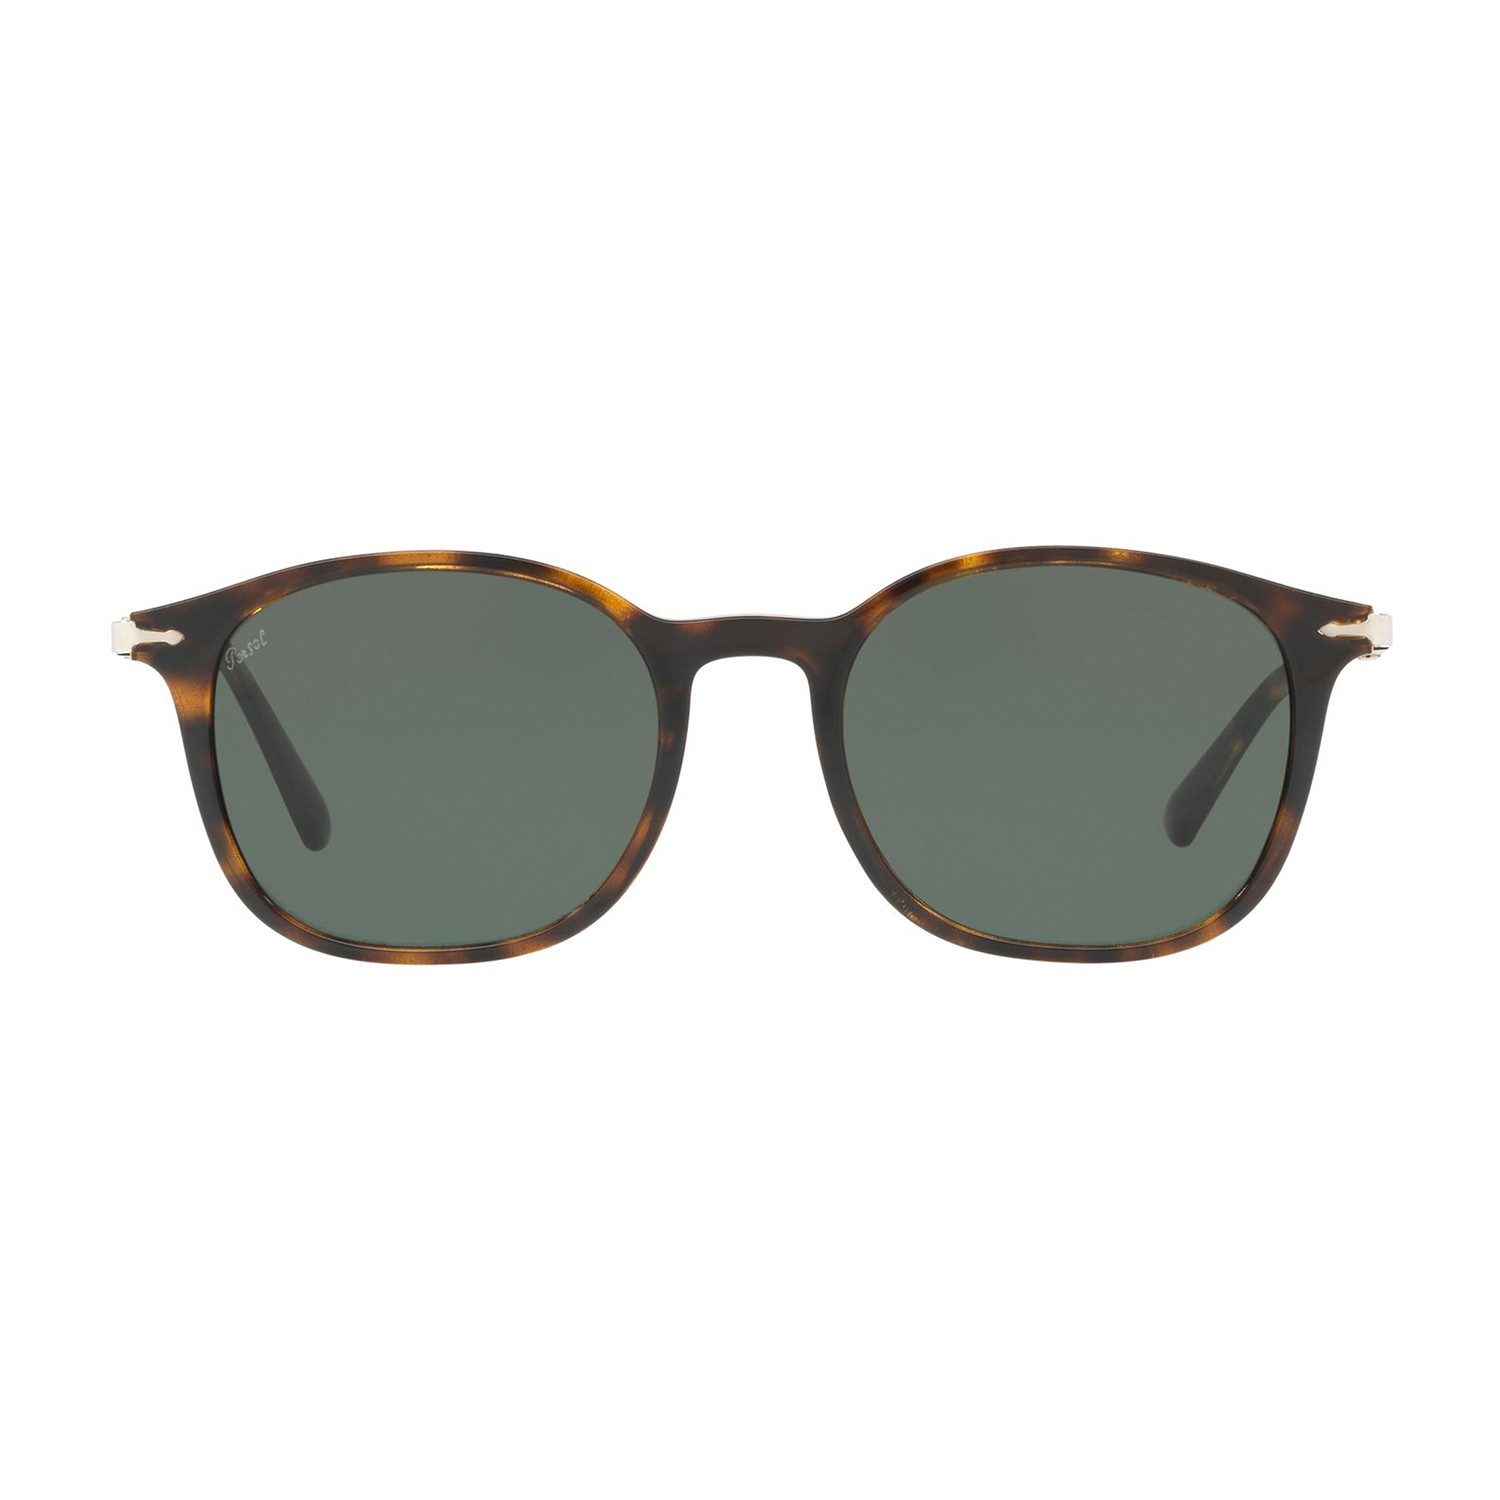 b460fbb4b0c Persol Polarized Classic Rectangular Sunglasses    Black - Persol ...